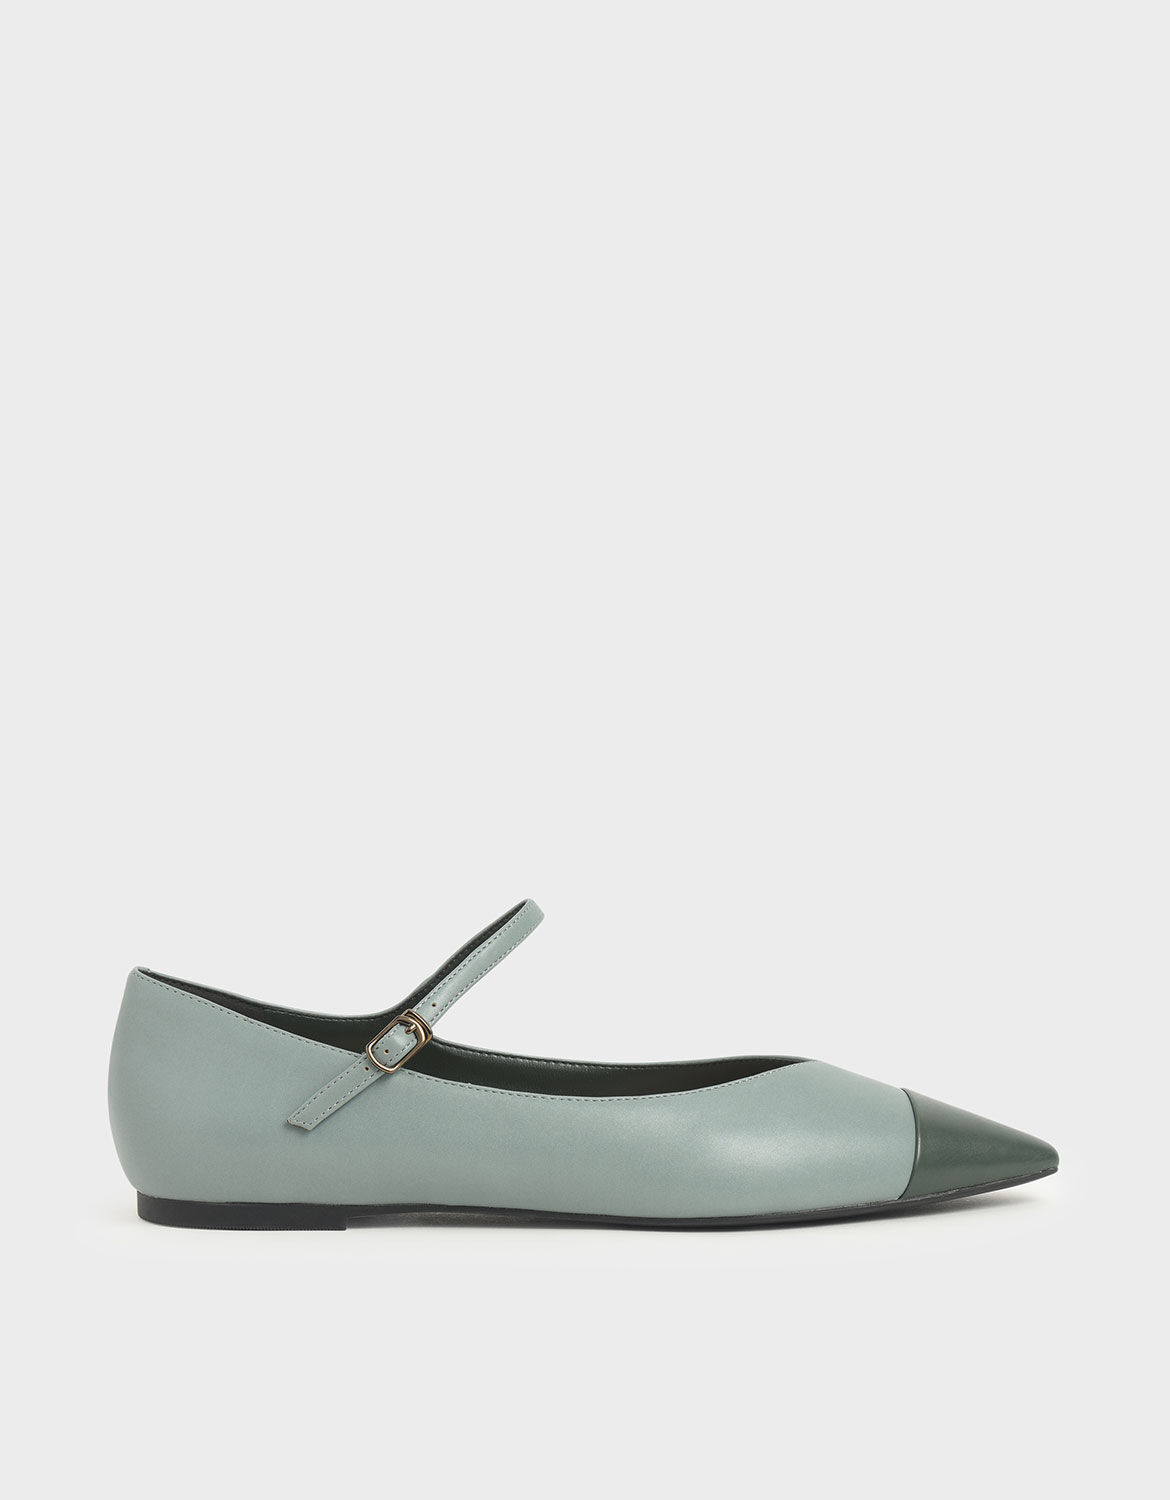 Two-Tone Pointed Toe Mary Jane Flats